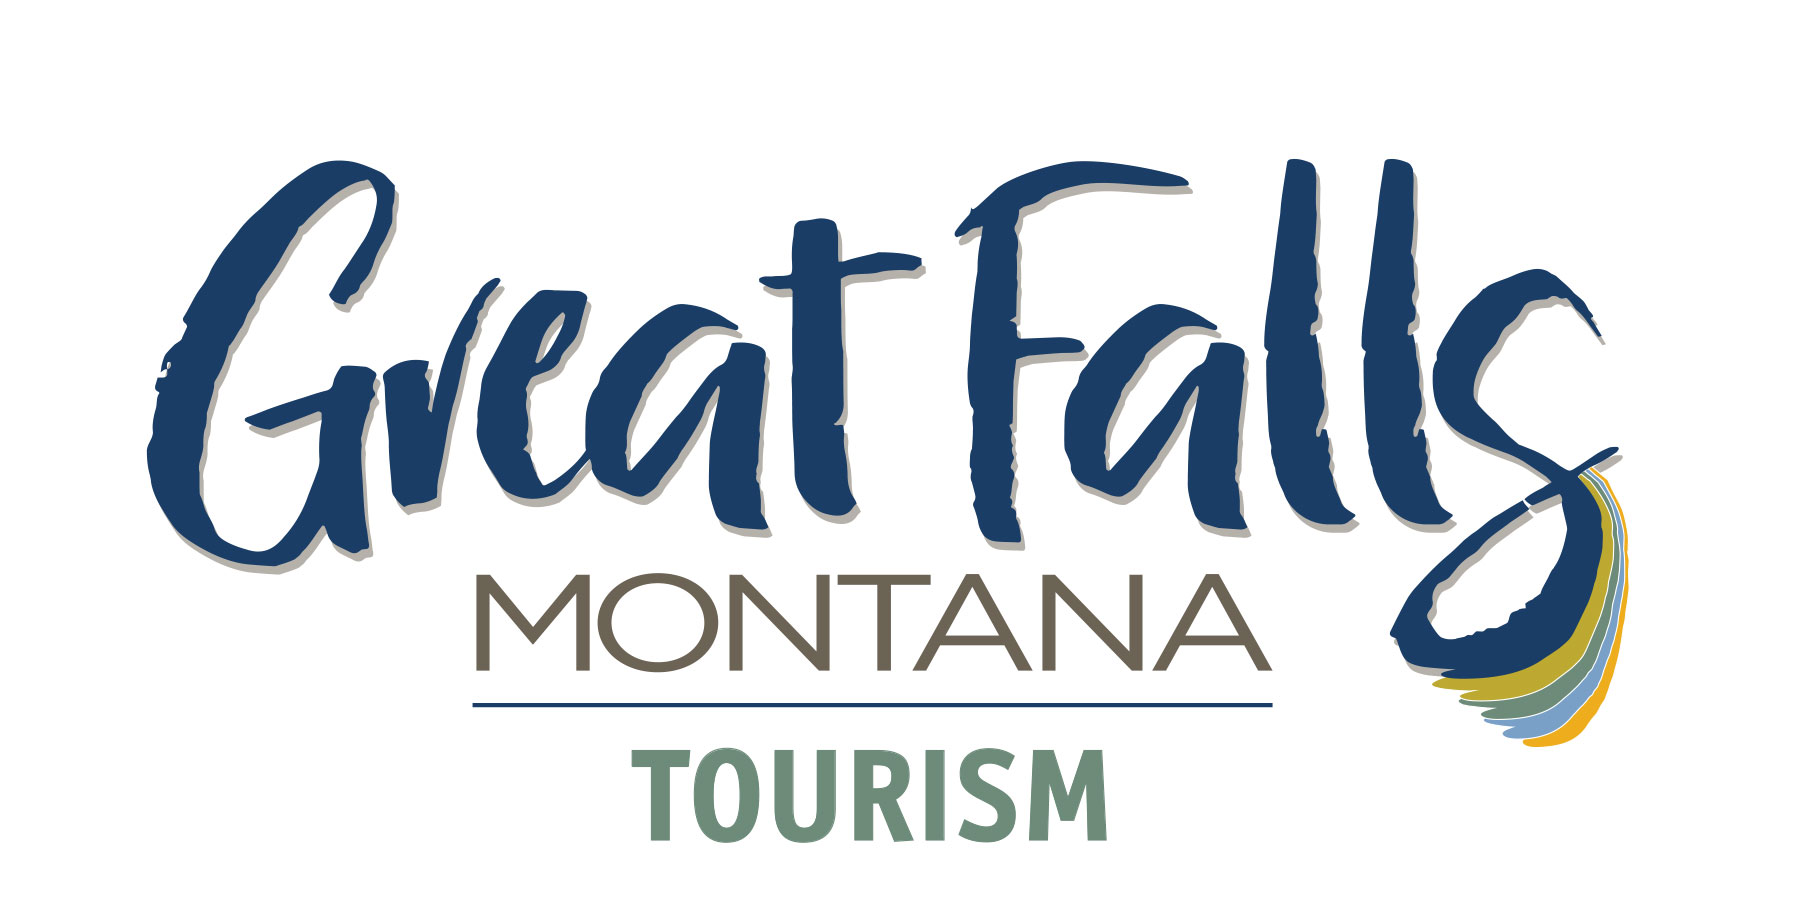 Great Falls Montana Tourism